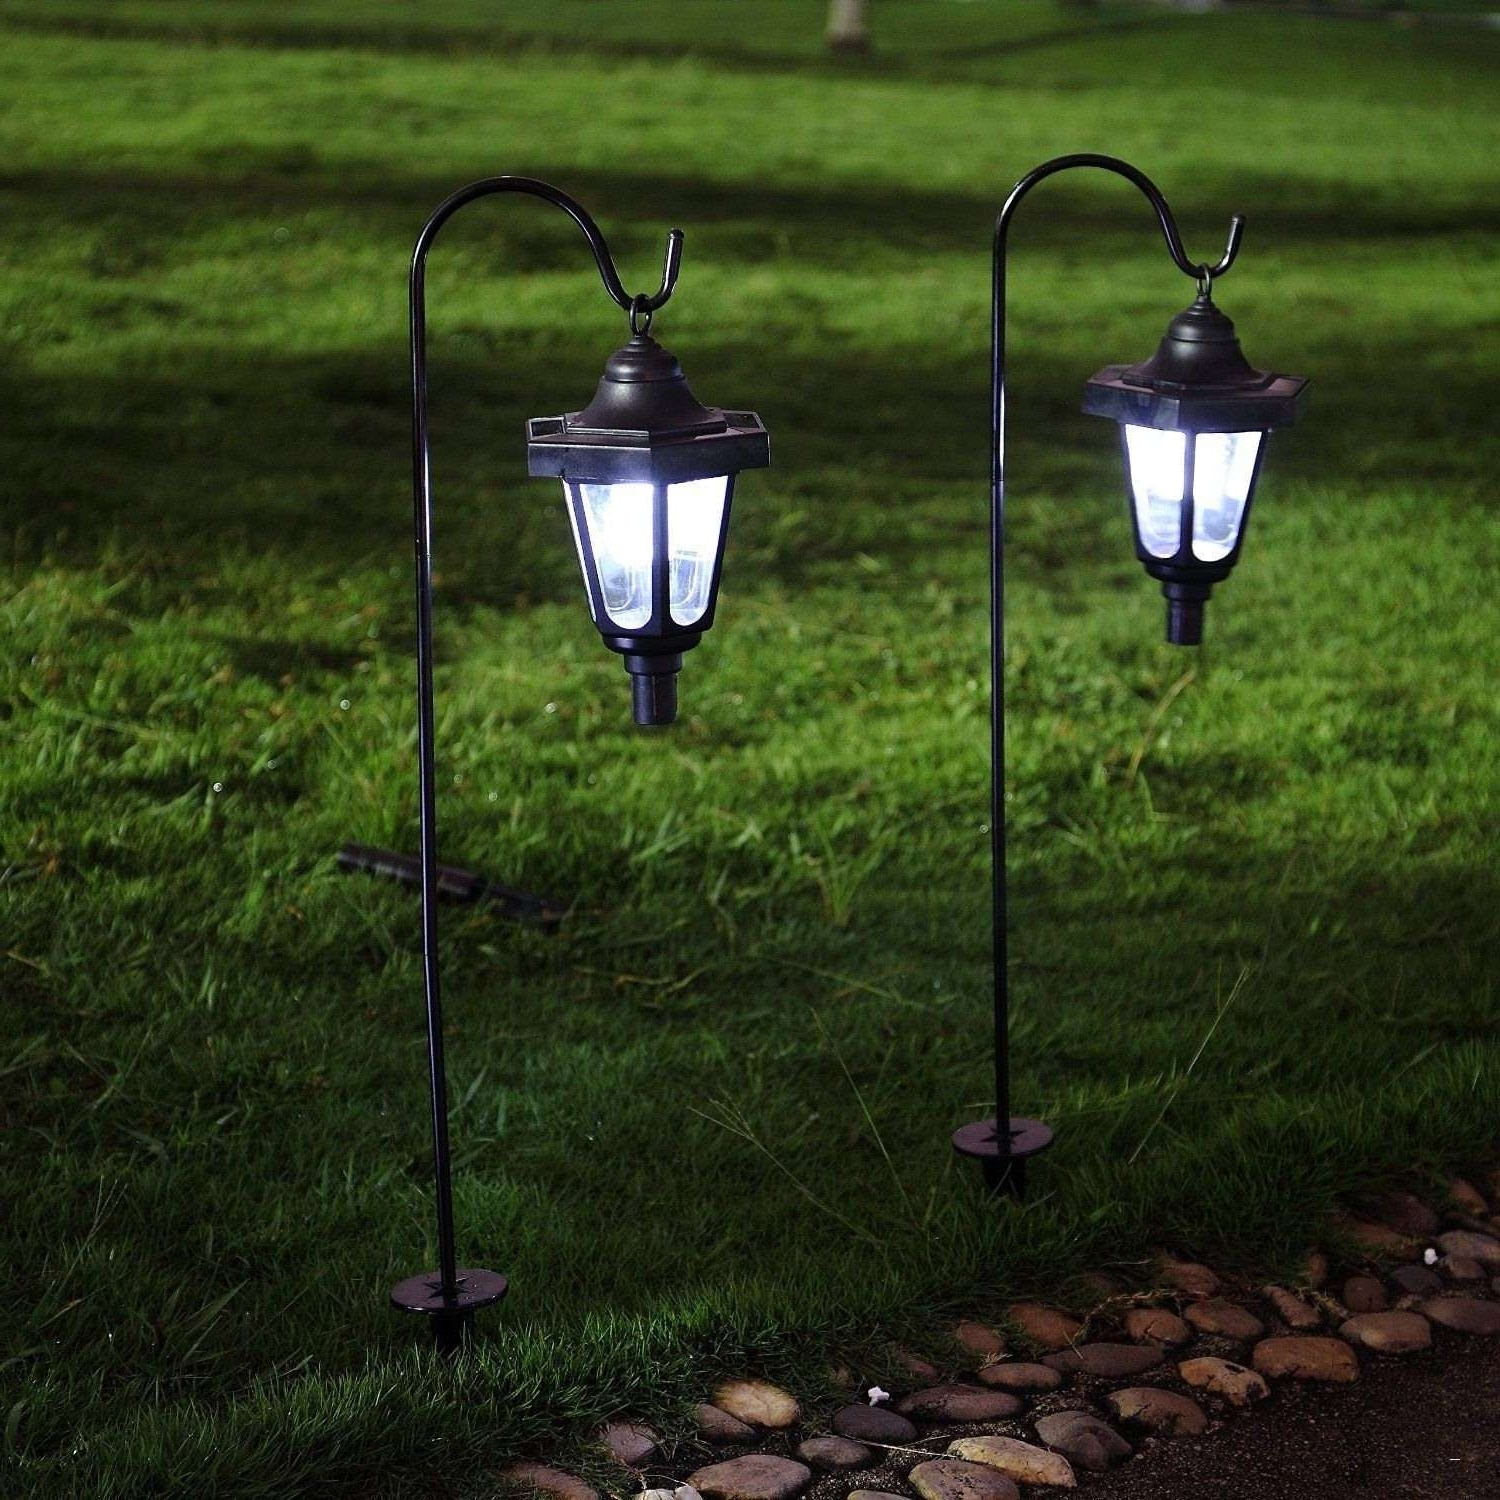 Outdoor Lanterns At Amazon Throughout 2019 Solar Outdoor Lanterns Amazon With Powered Garden Lights Reviews (View 10 of 20)